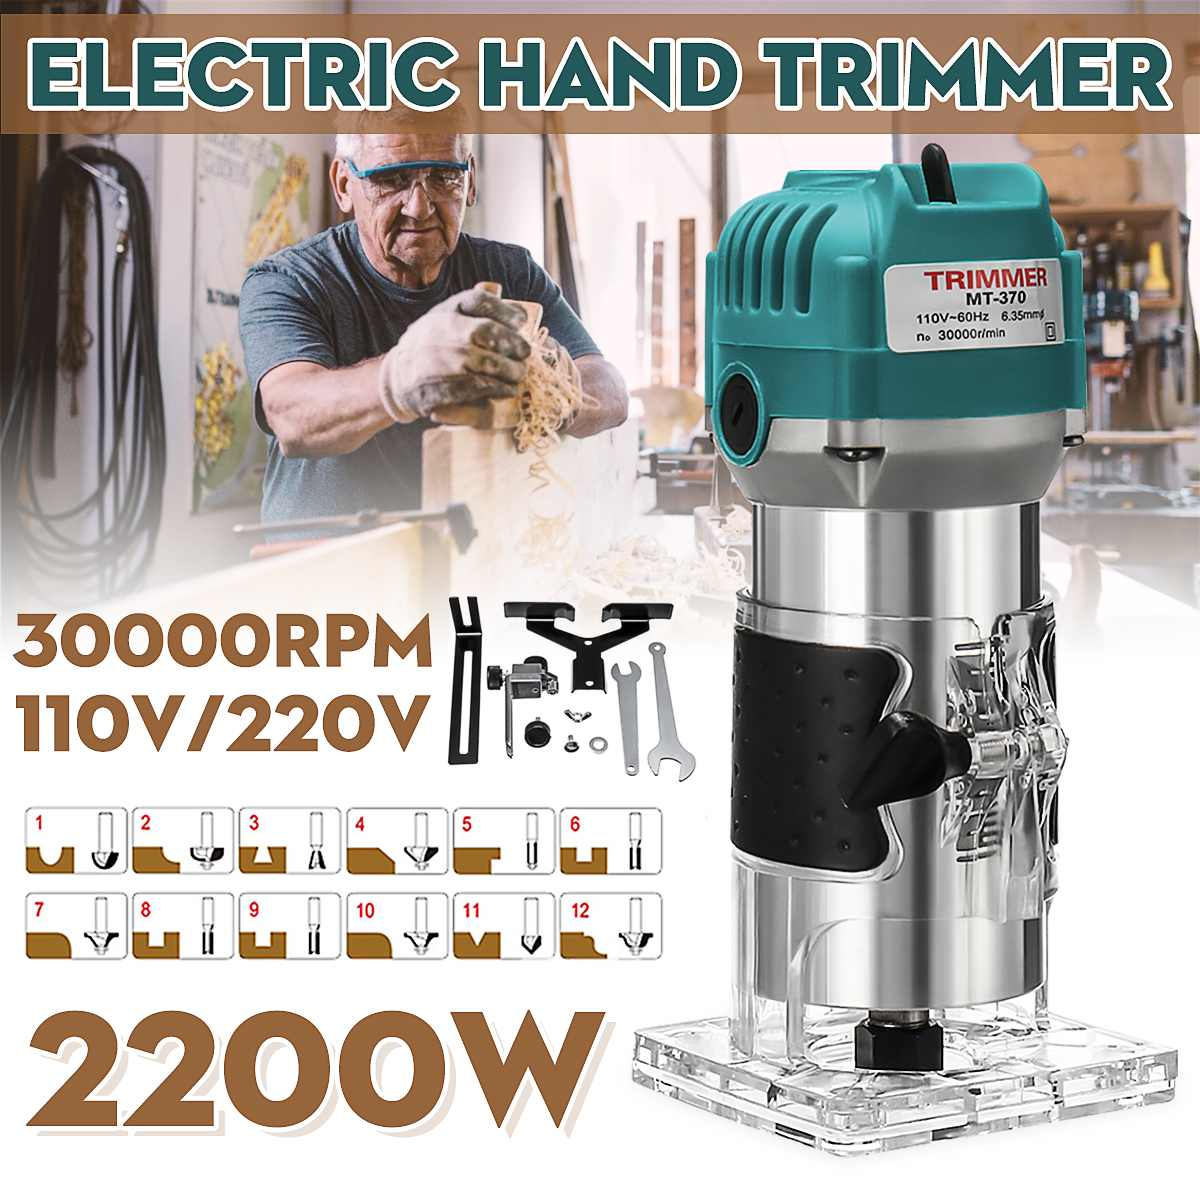 110V/220V 2200W 6.35mm Electric Hand Trimmer Wood Laminate Palms Router Joiners Router for Woodworking Tool Kit